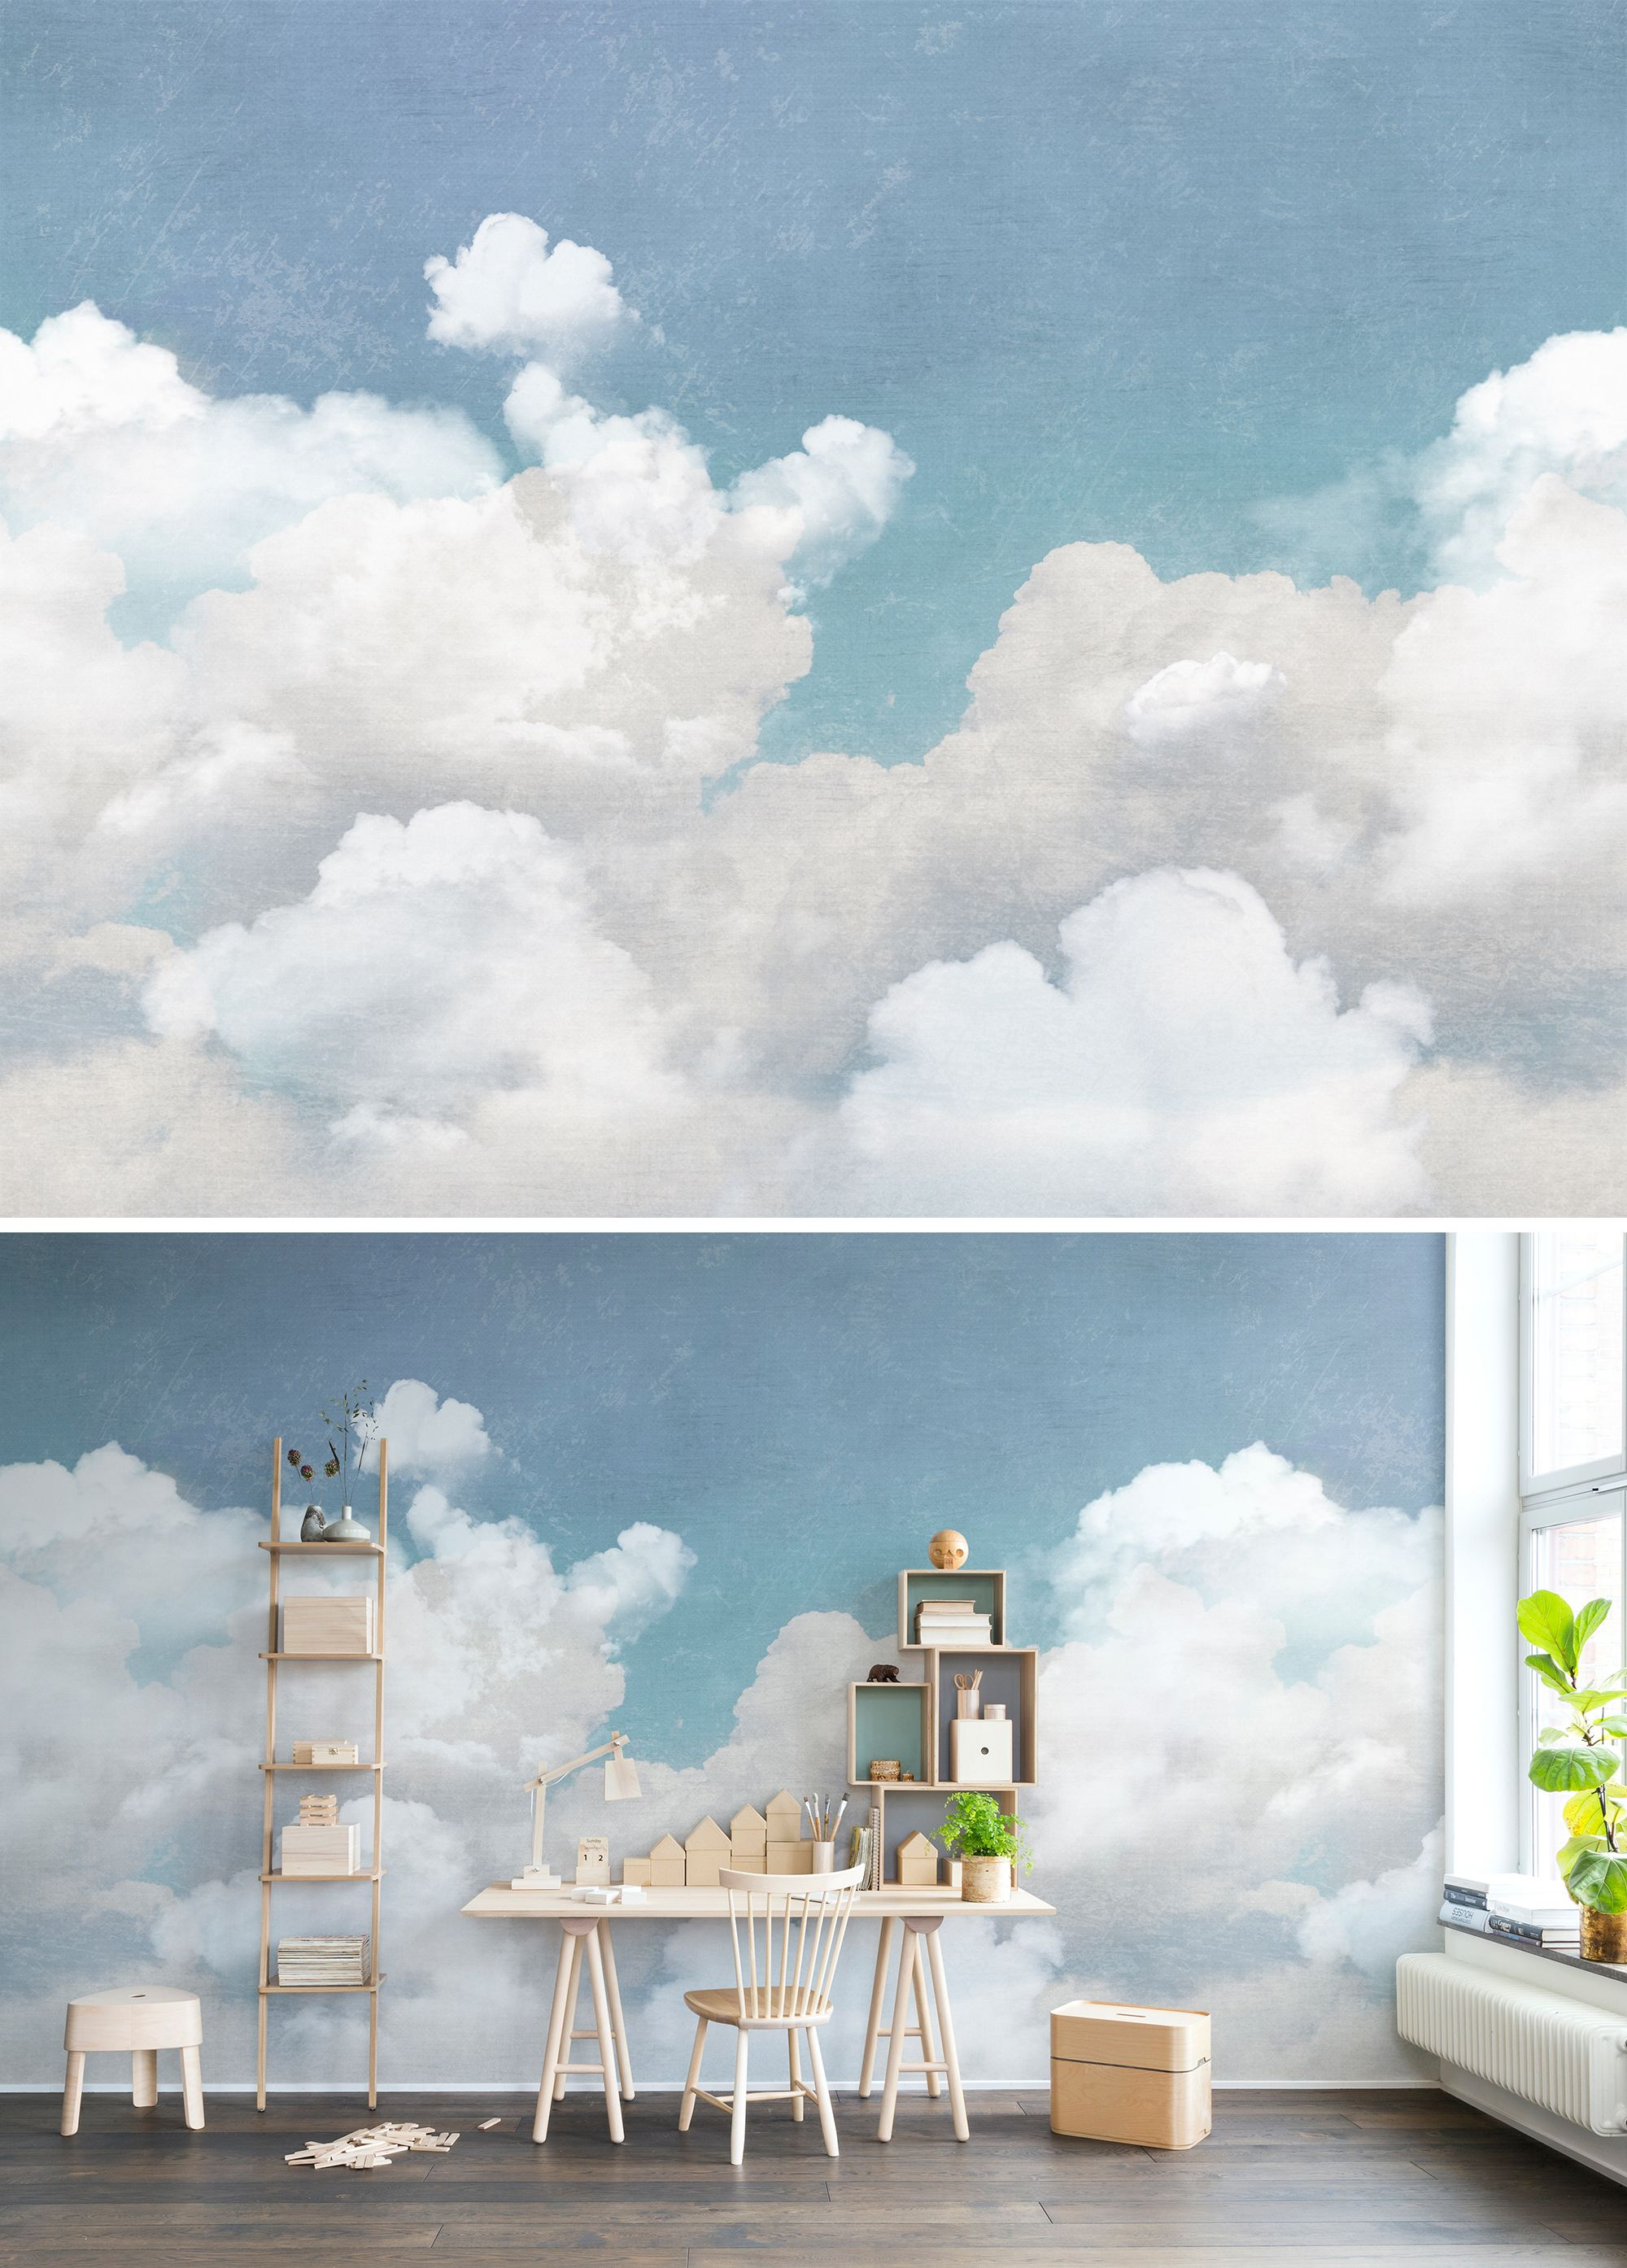 Wall mural wallpaper blue turquoise dream sky for Mural wallpaper